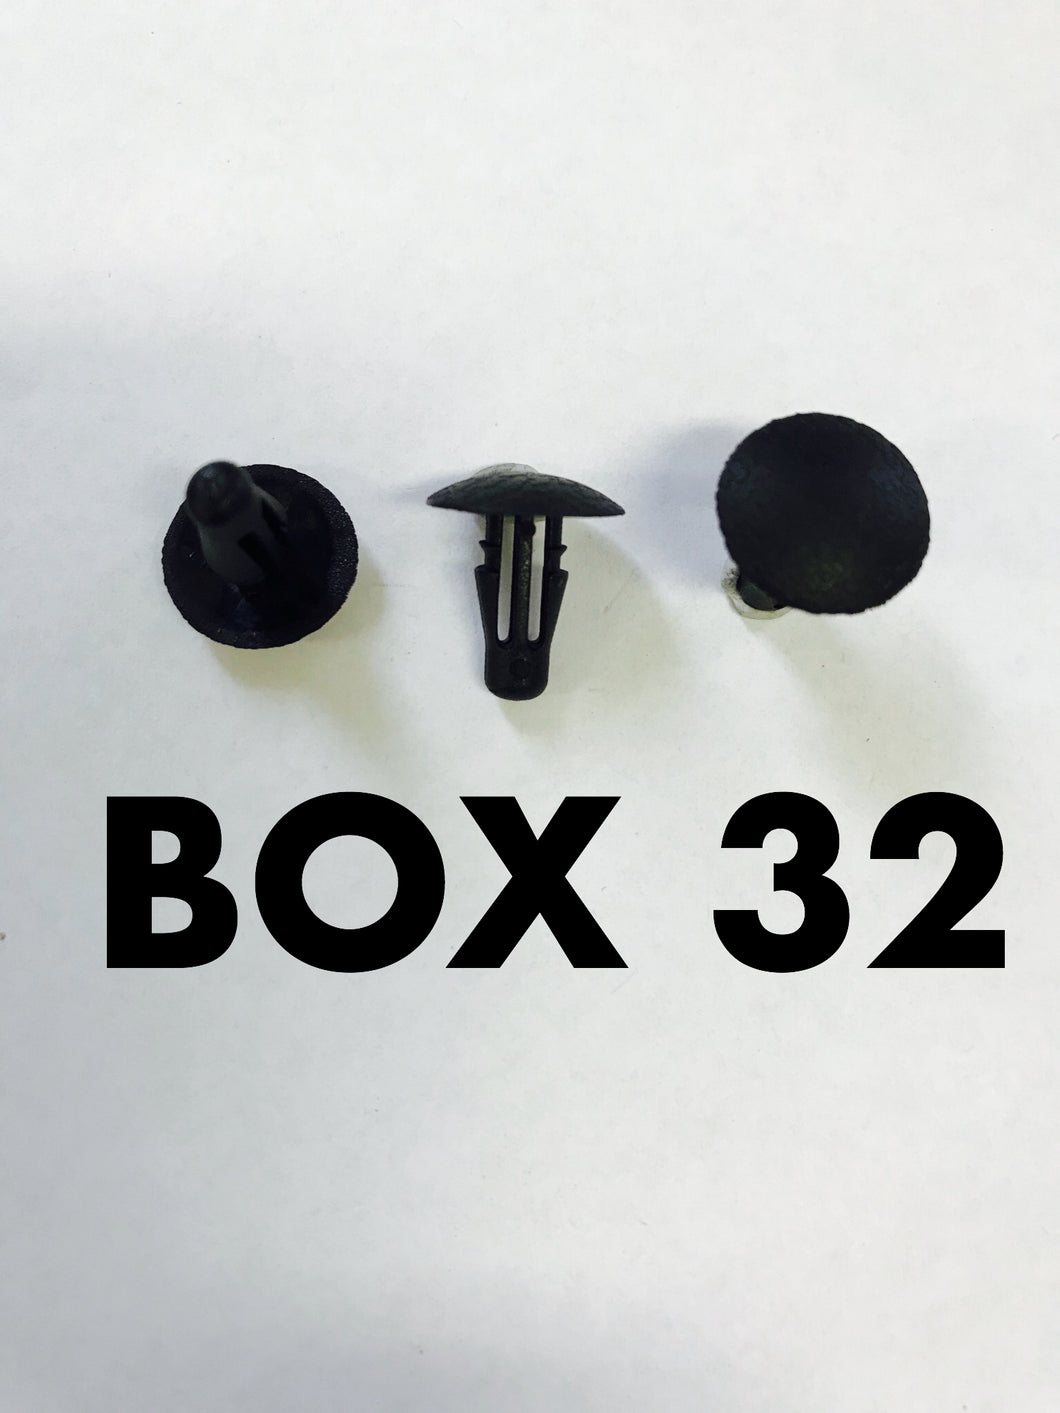 Carclips Box 32 10490 - Colourfast Auto